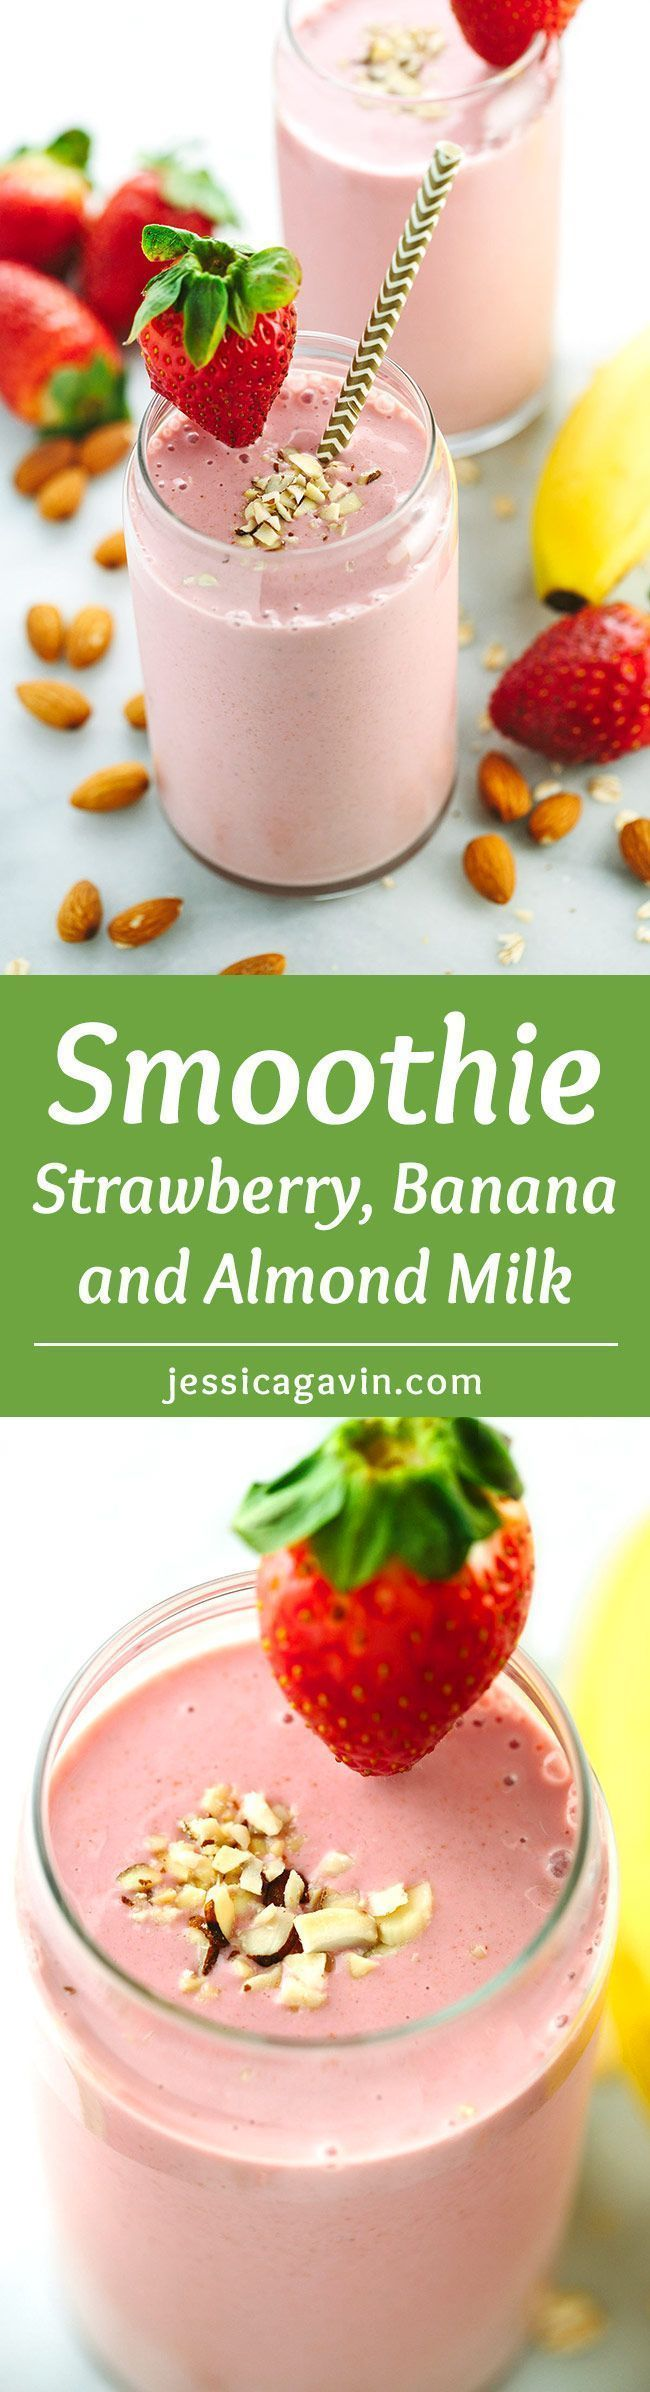 Strawberry Banana Smoothie with Almond Milk - Don't skip breakfast! With fruit, oats, yogurt, and almonds, this on-the-go healthy smoothie recipe will keep you energized when you need it. | http://jessicagavin.com burn fat smoothie